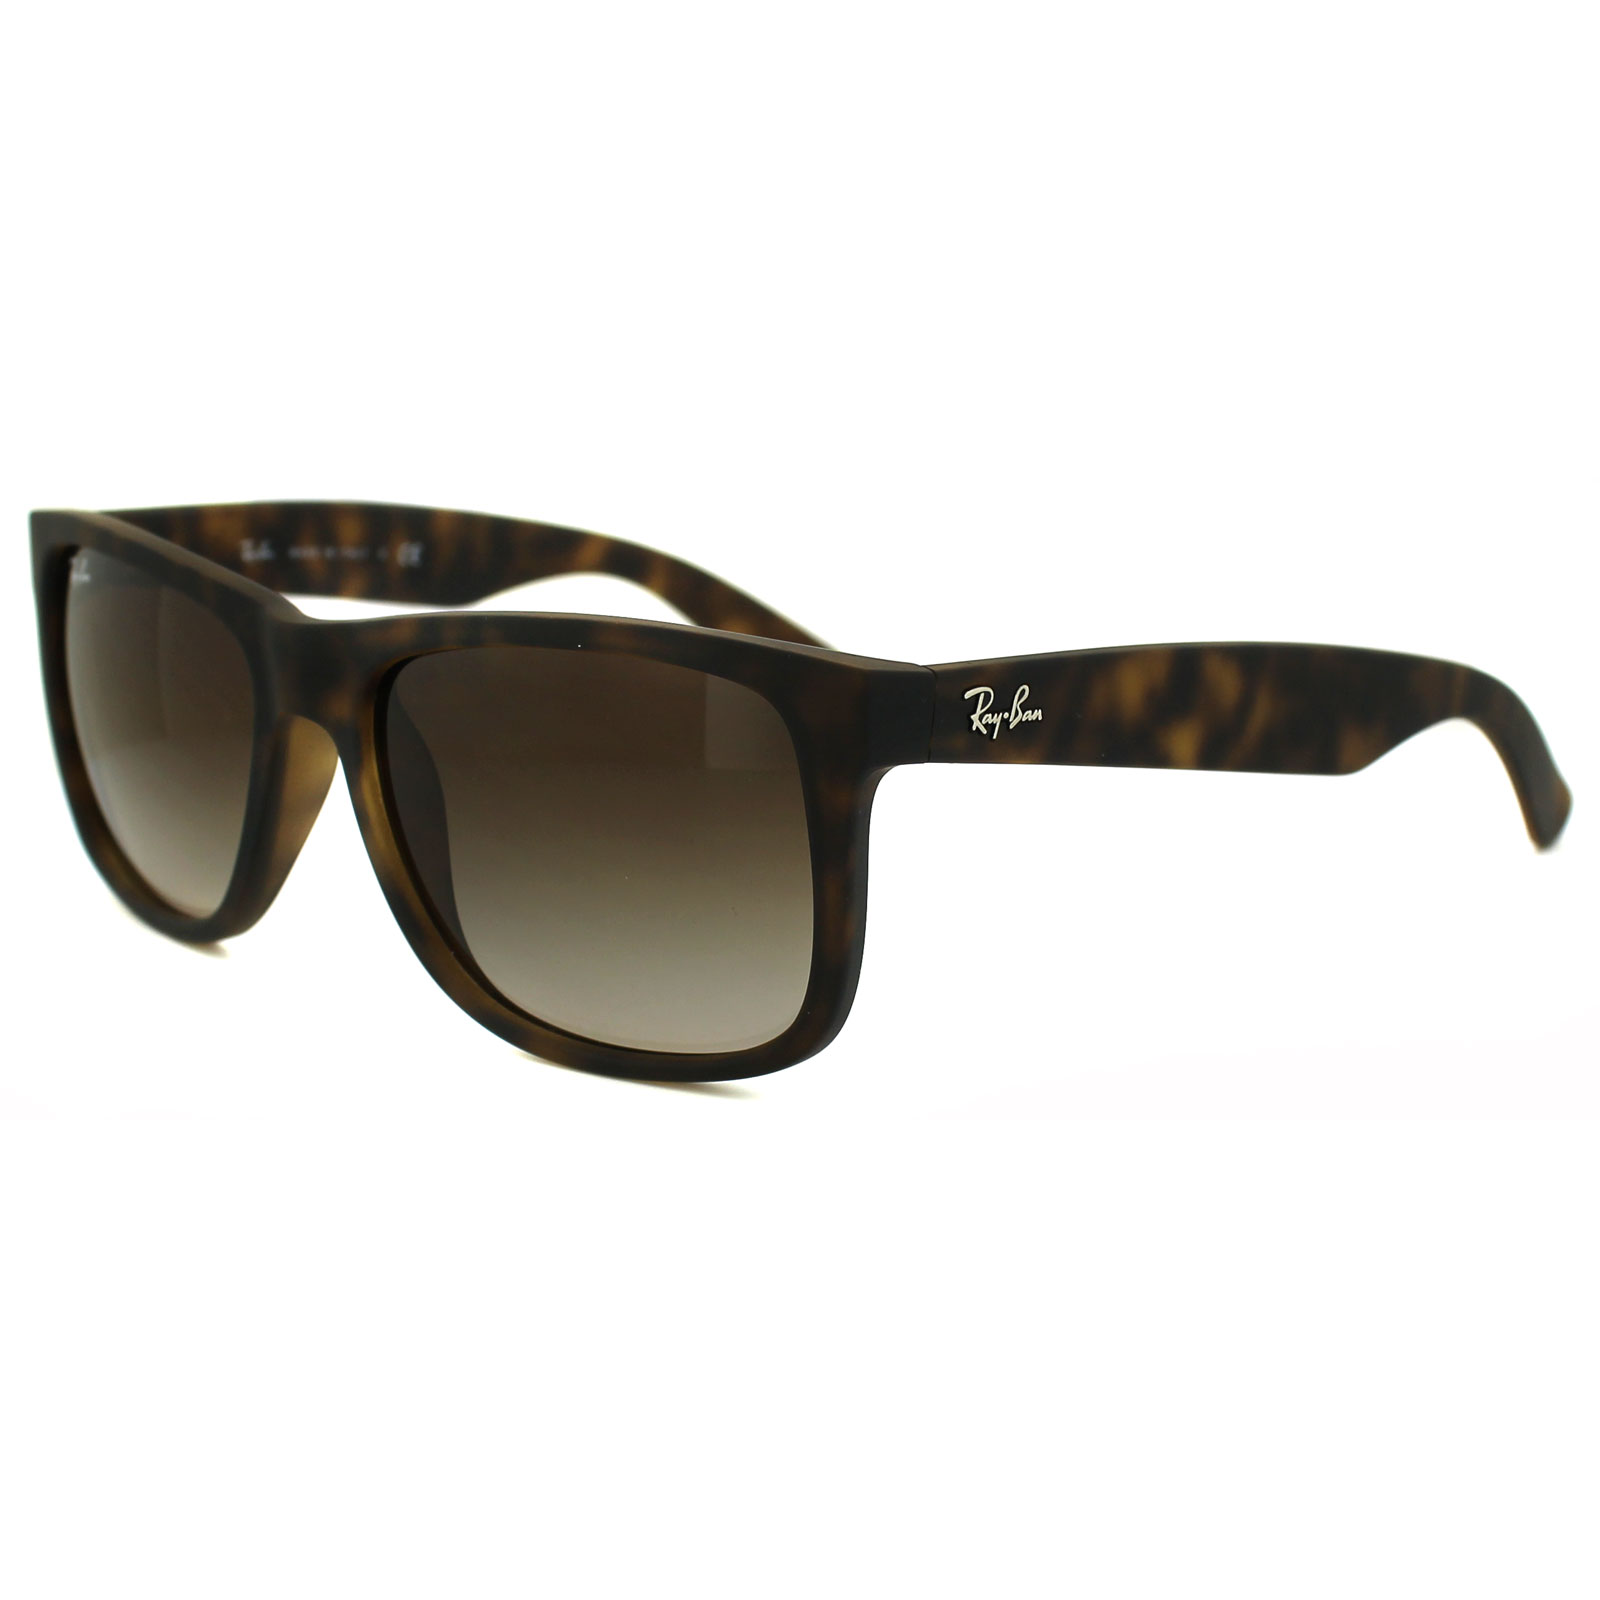 f67b855721 Cheap Ray-Ban 4165 Sunglasses - Discounted Sunglasses